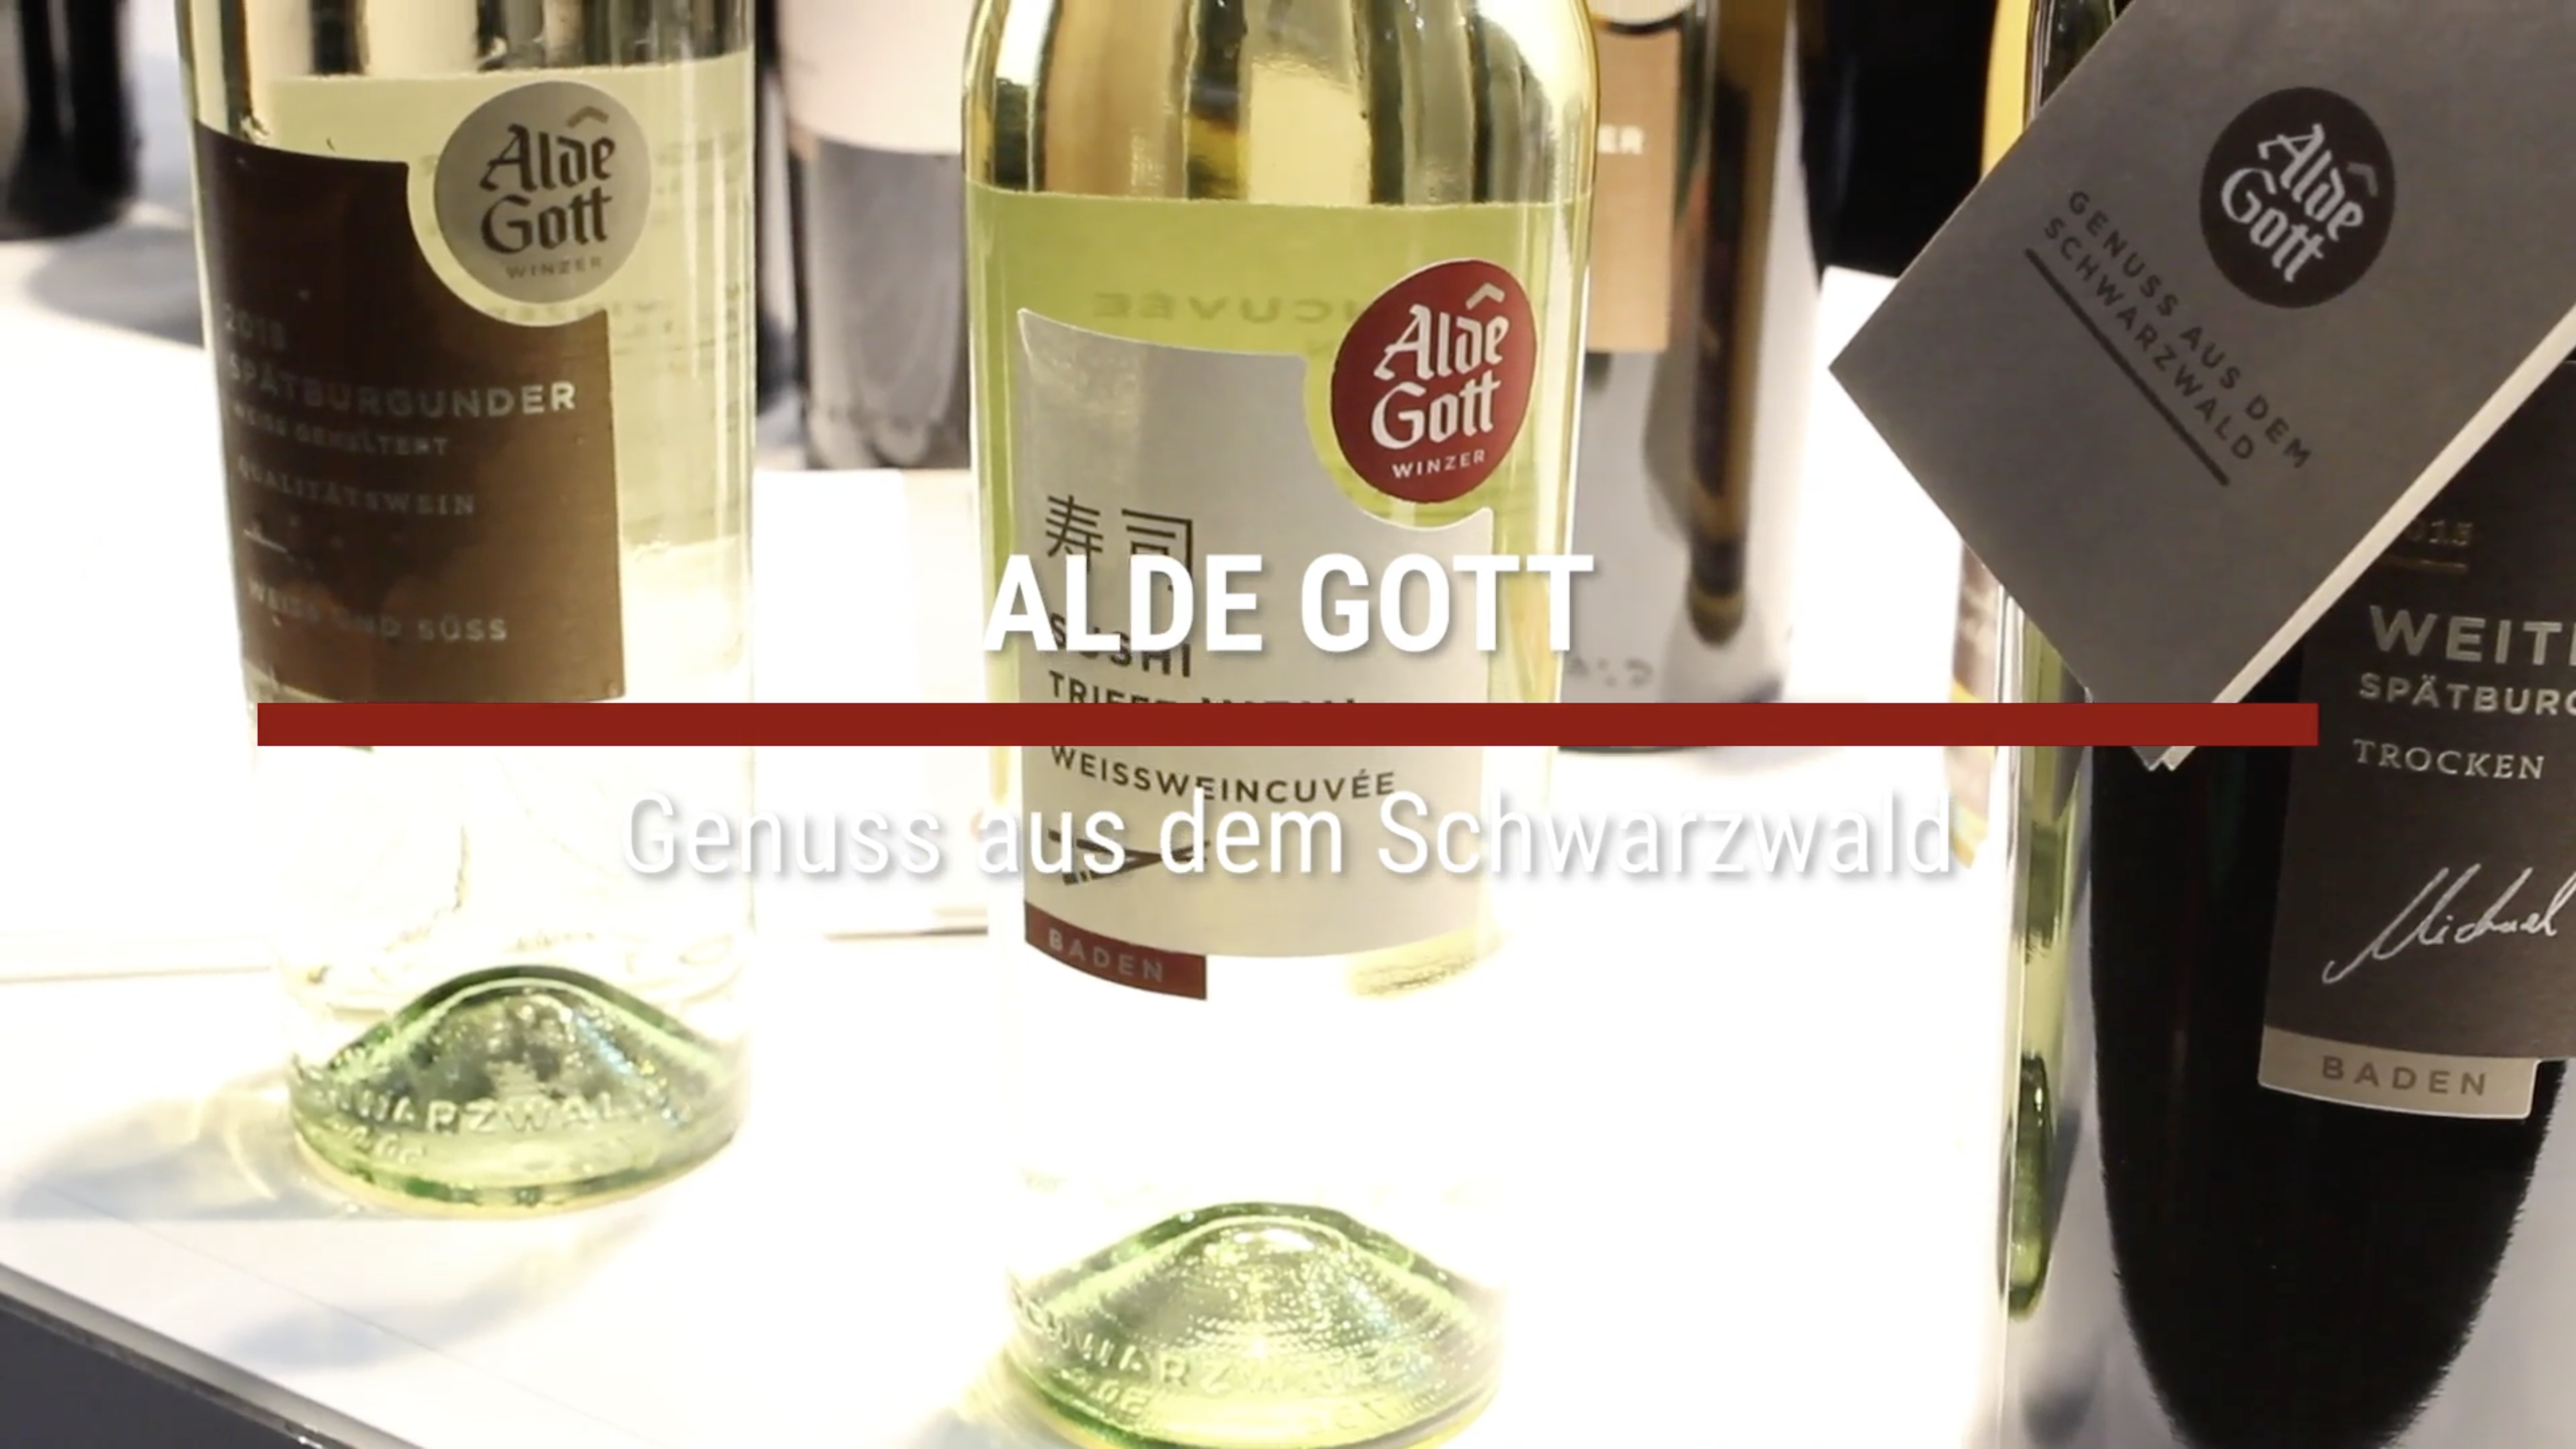 Alde Gott – Sushi wine from the Black Forest